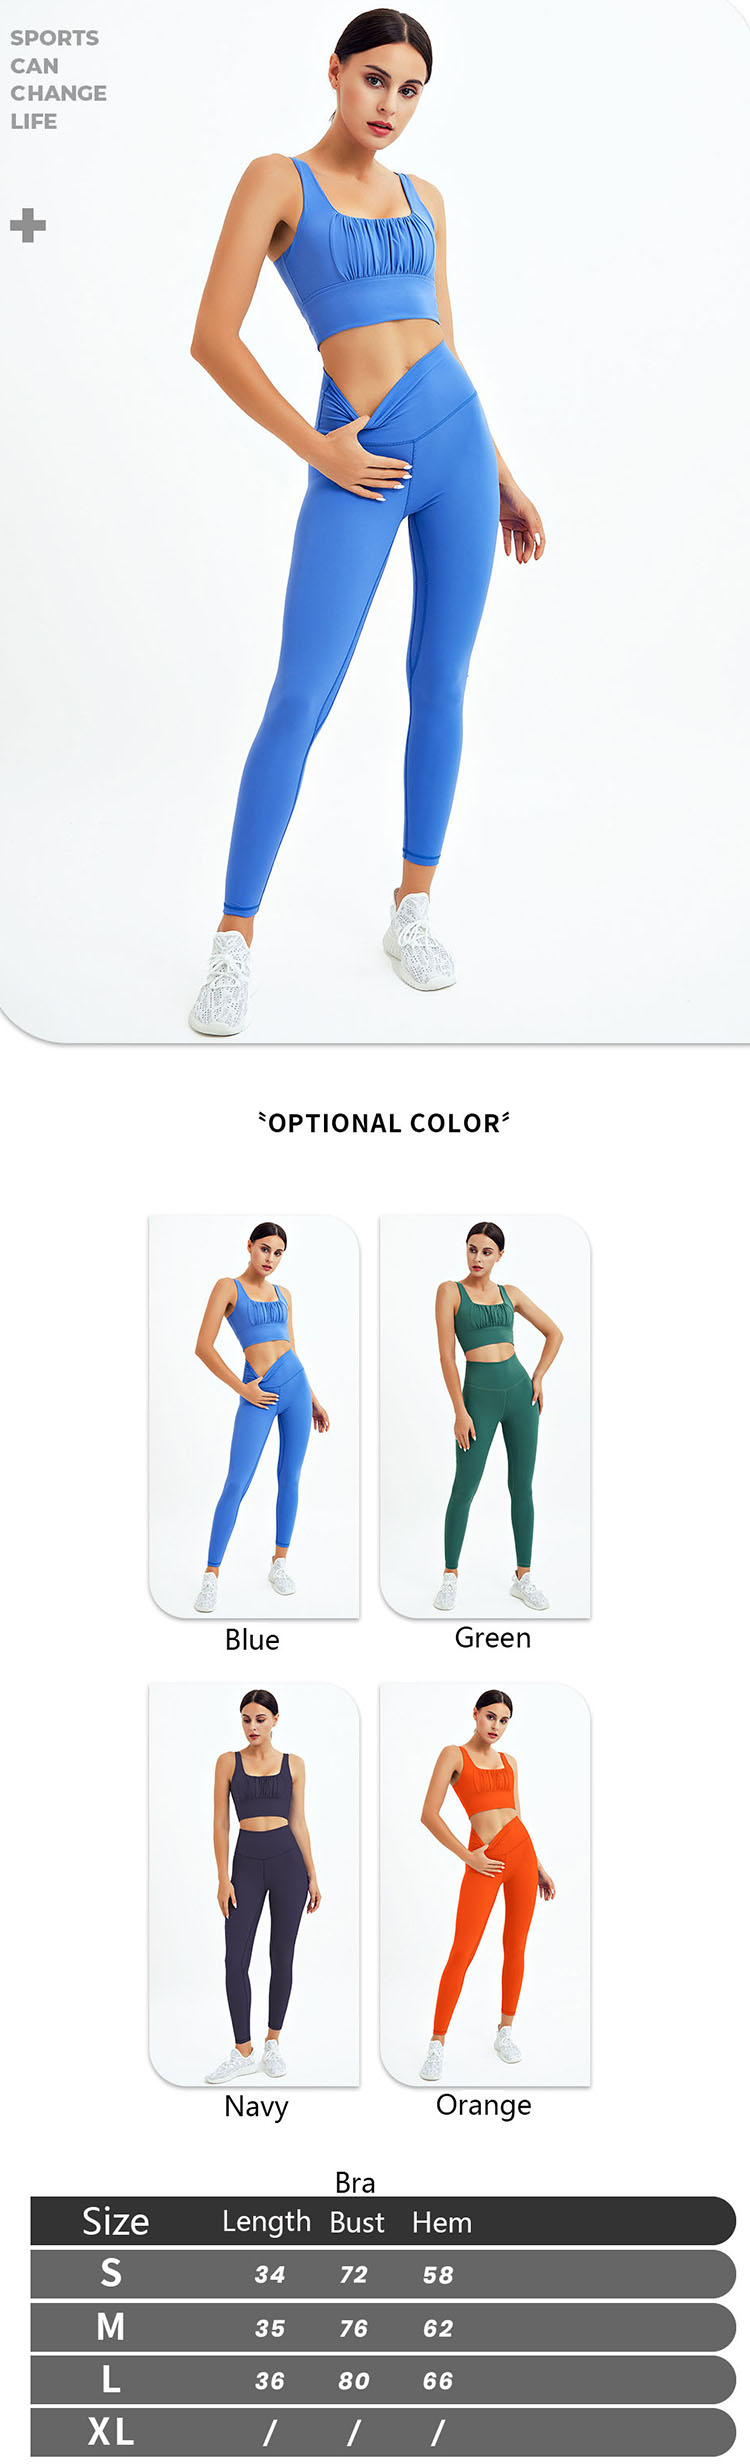 The design of green athletic leggings has frequently appeared in the design of underwear and home clothes this season